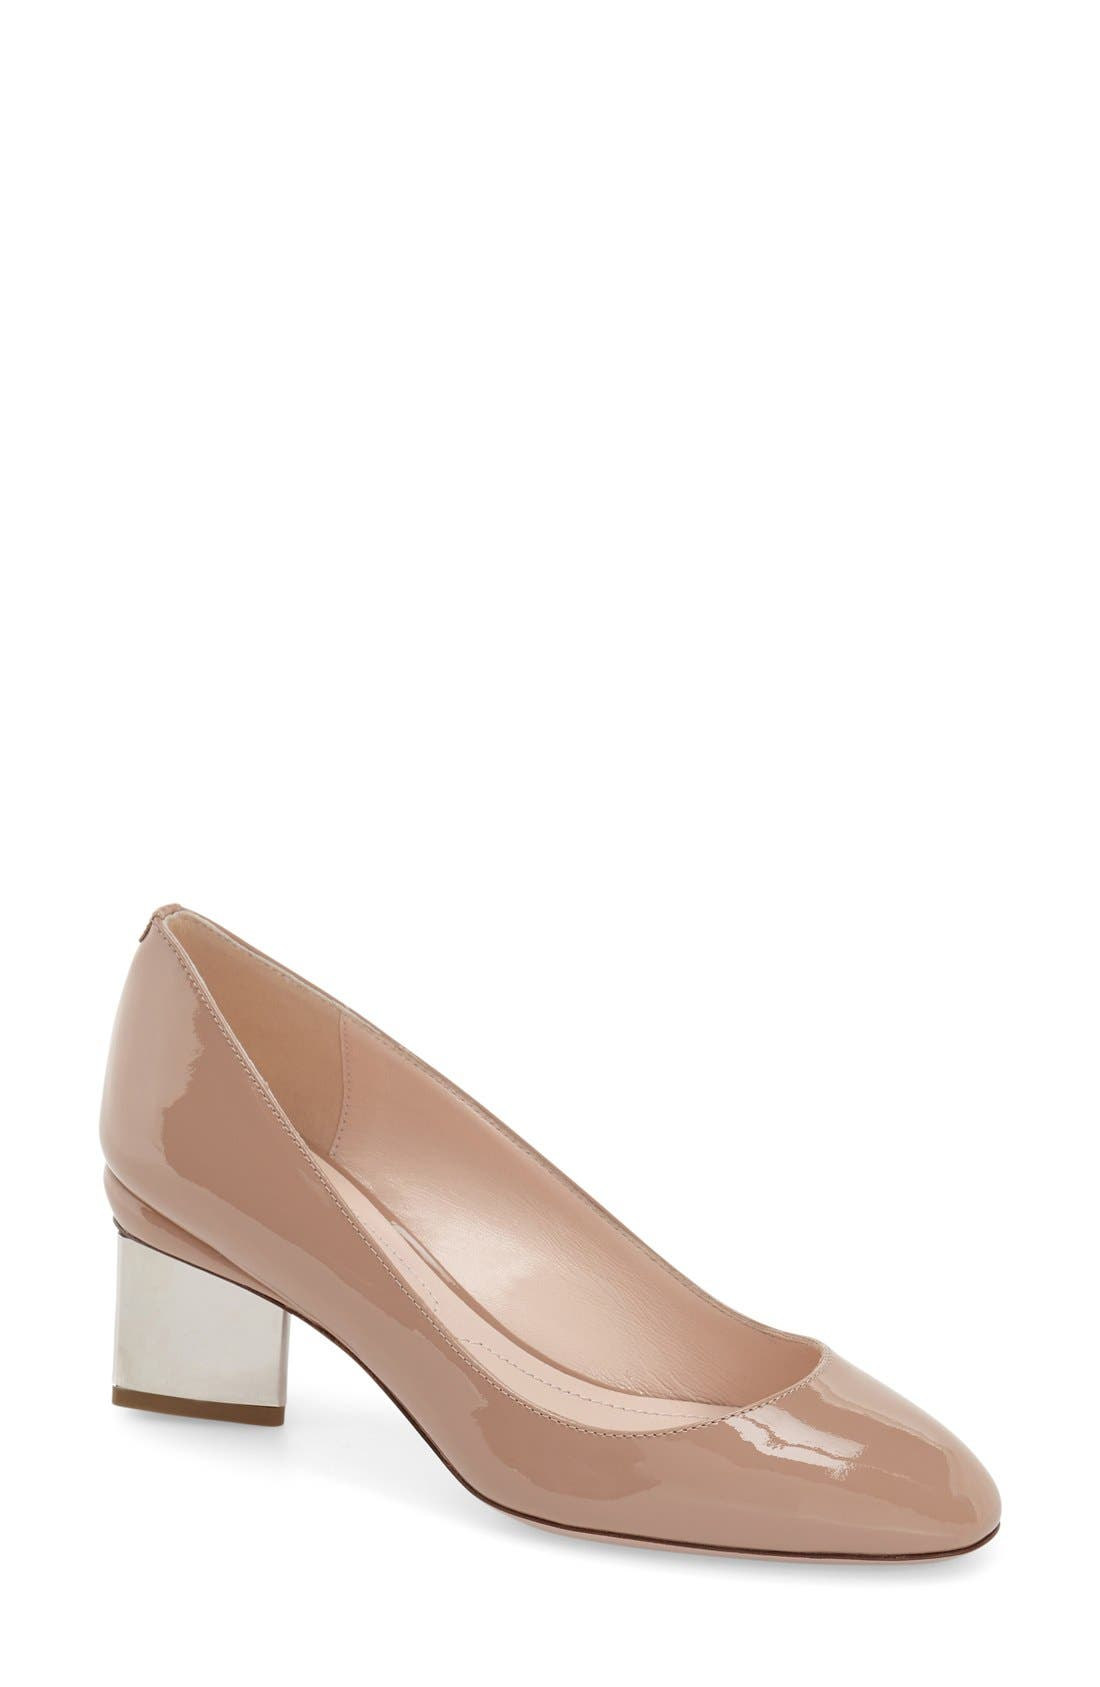 Alternate Image 1 Selected - Nicholas Kirkwood 'Briona' Round Toe Pump (Women)